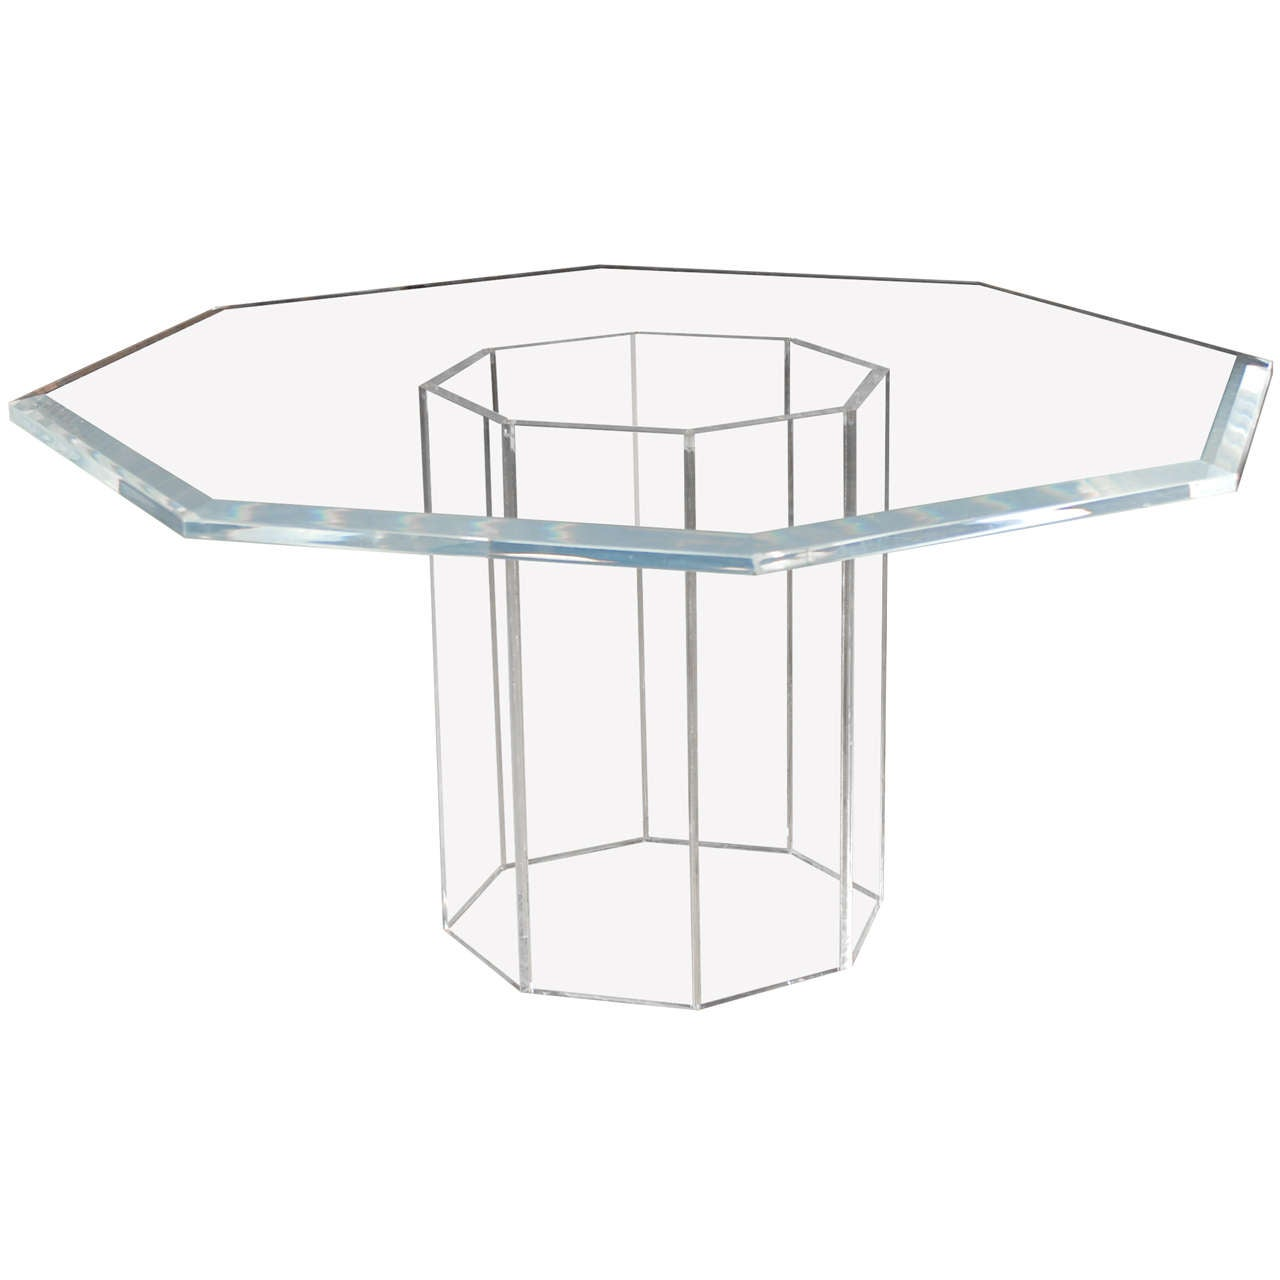 Magnificent Lucite Octagonal Table At 1stdibs